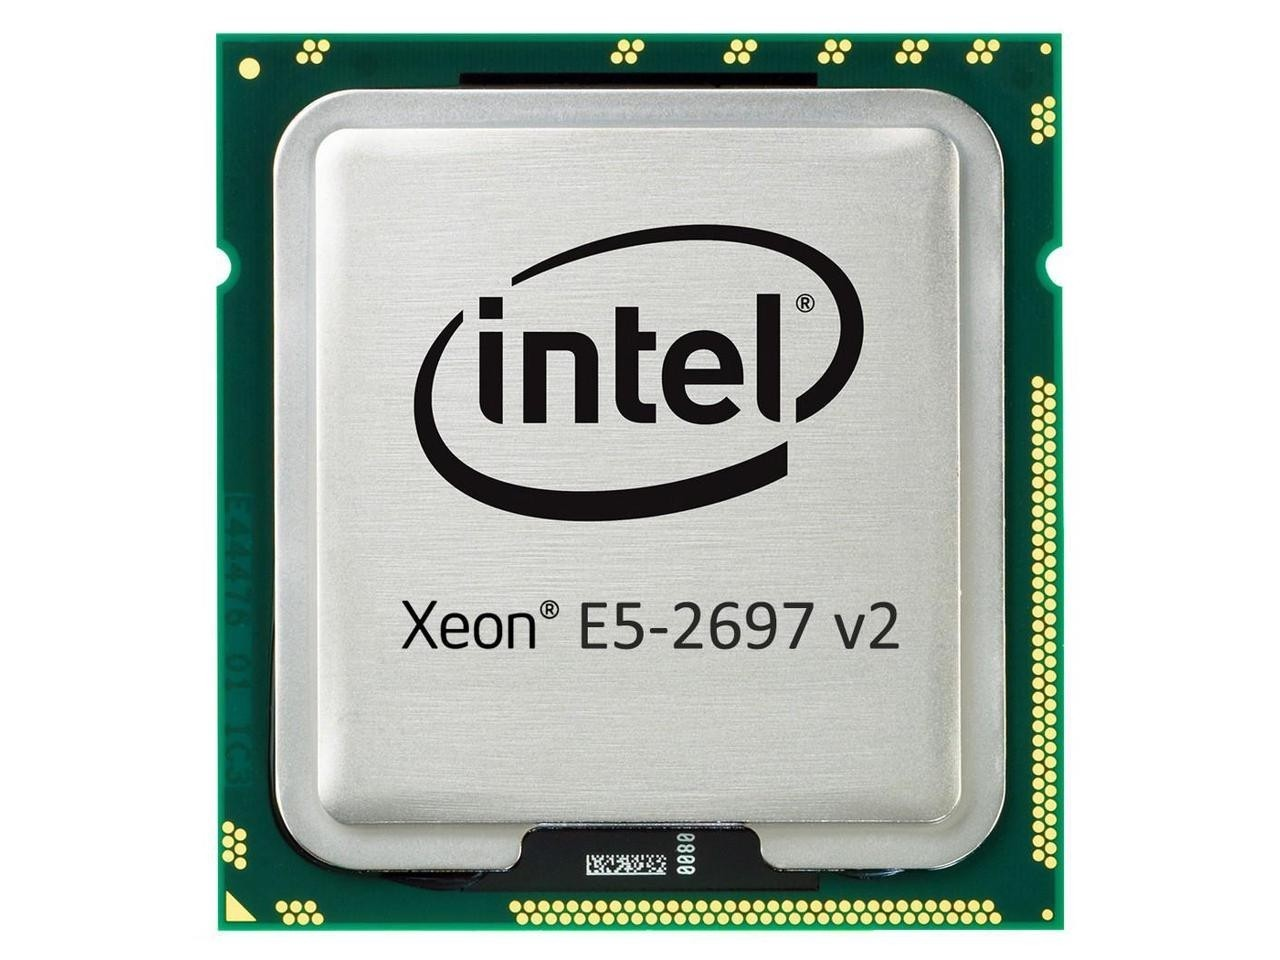 OWC 12-Core 2.7GHz Intel Xeon E5-2697 v2 Processor Upgrade Kit for Mac Pro (Late 2013) - Used | OWC Tested, OWCDIDMP13X2697